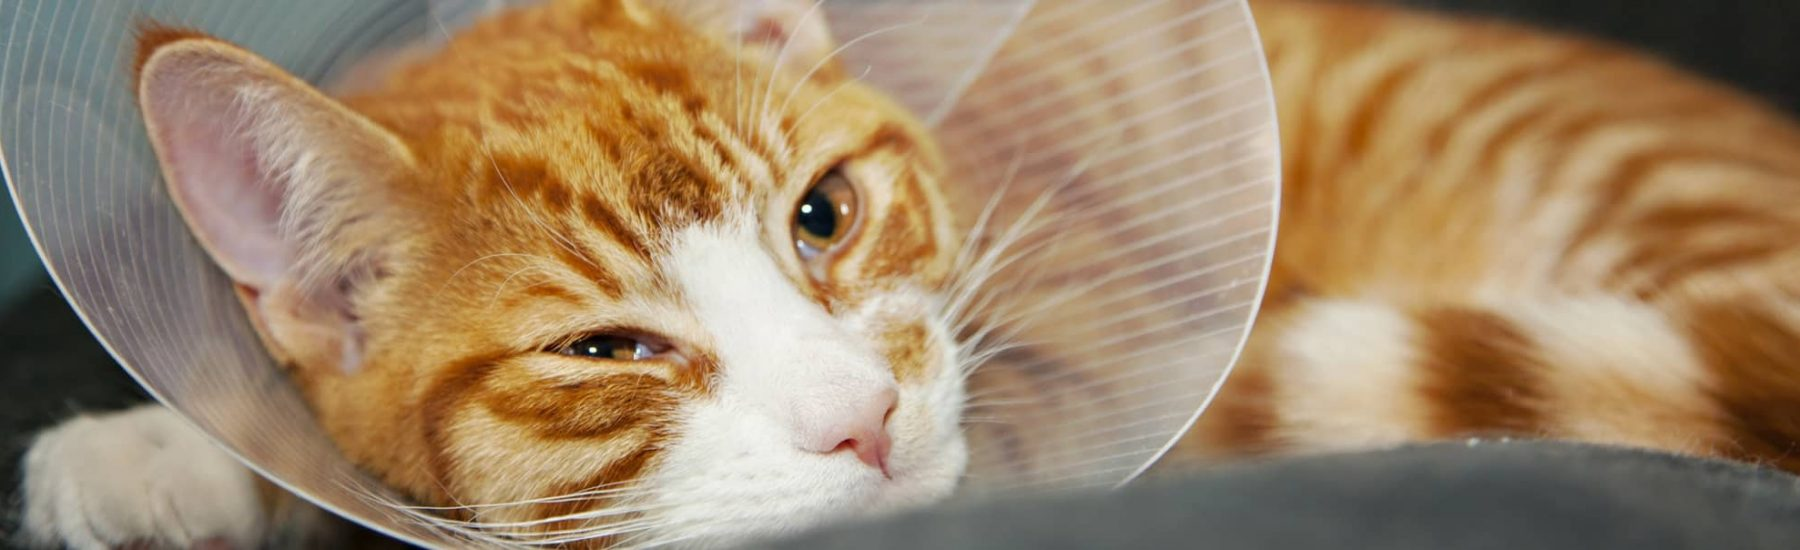 Ginger striped cat wearing a cone